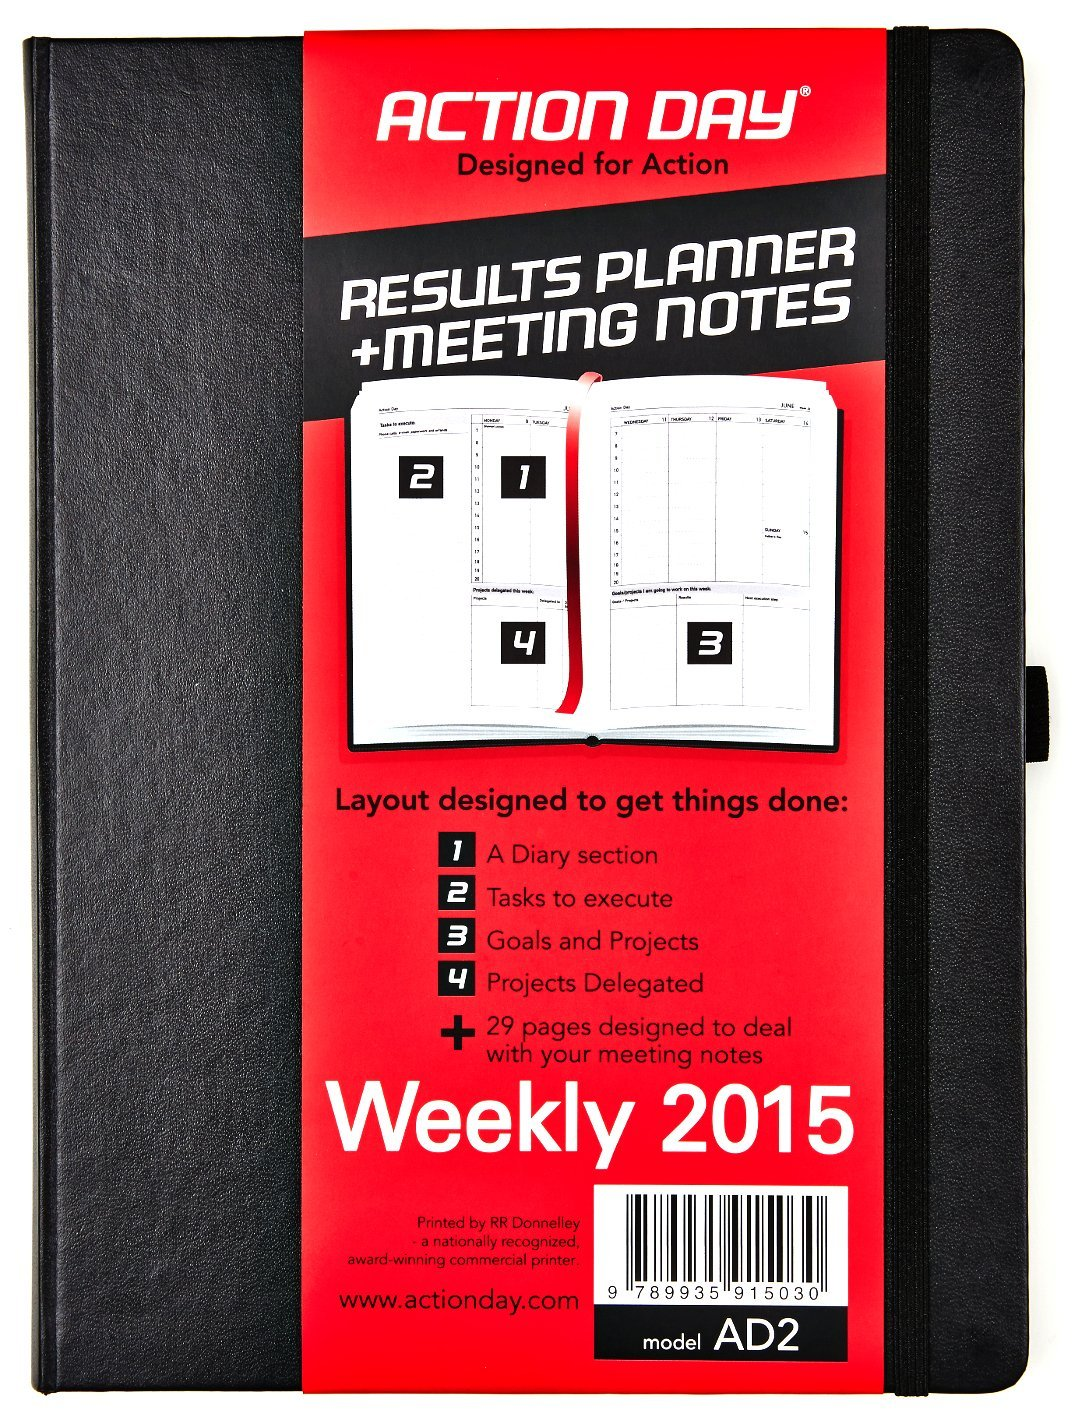 Action Day Weekly Planner 2015 - Size 8x11 - Layout Designed to Get Things Done - (Daily Calendar (+) Day Planner (+) Weekly Diary (+) Monthly Planner (+) Goals Journal (+) Datebook (+) Meeting Notes)